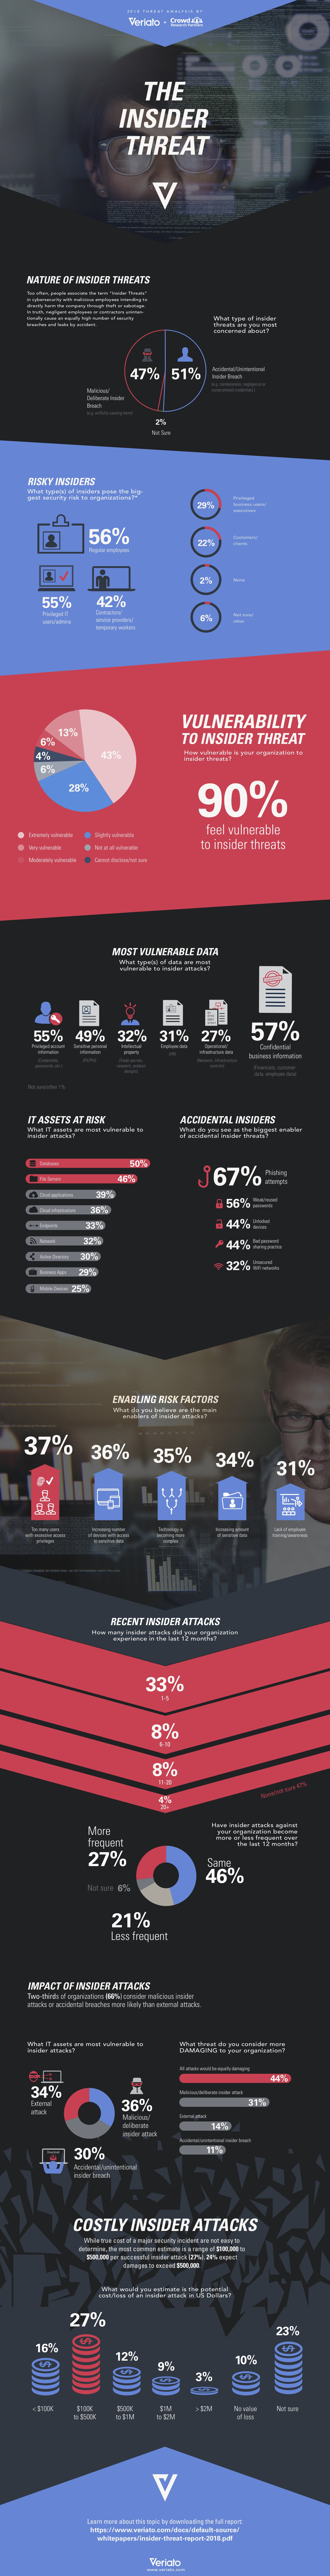 The 2018 Insider Threat Report [Infographic]